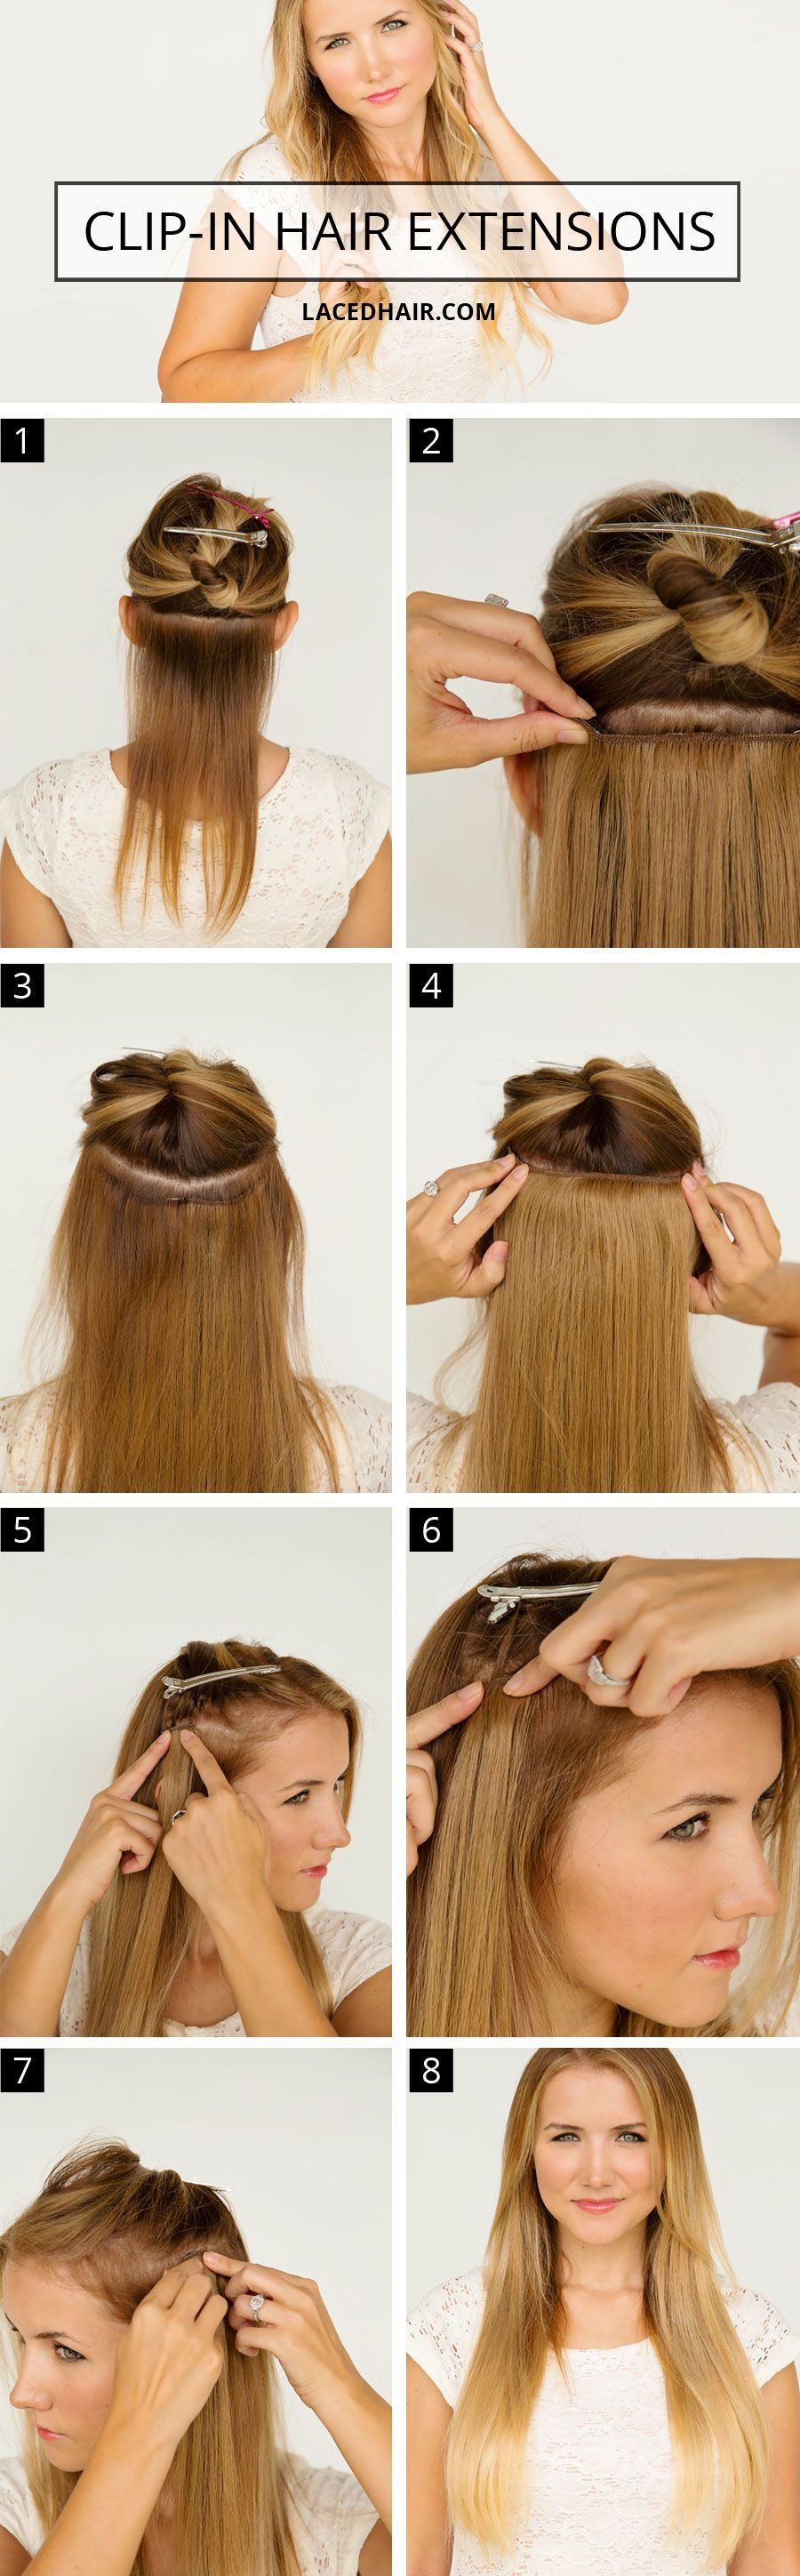 How To Wear Clip In Hair Extensions Laced Hair Make Up